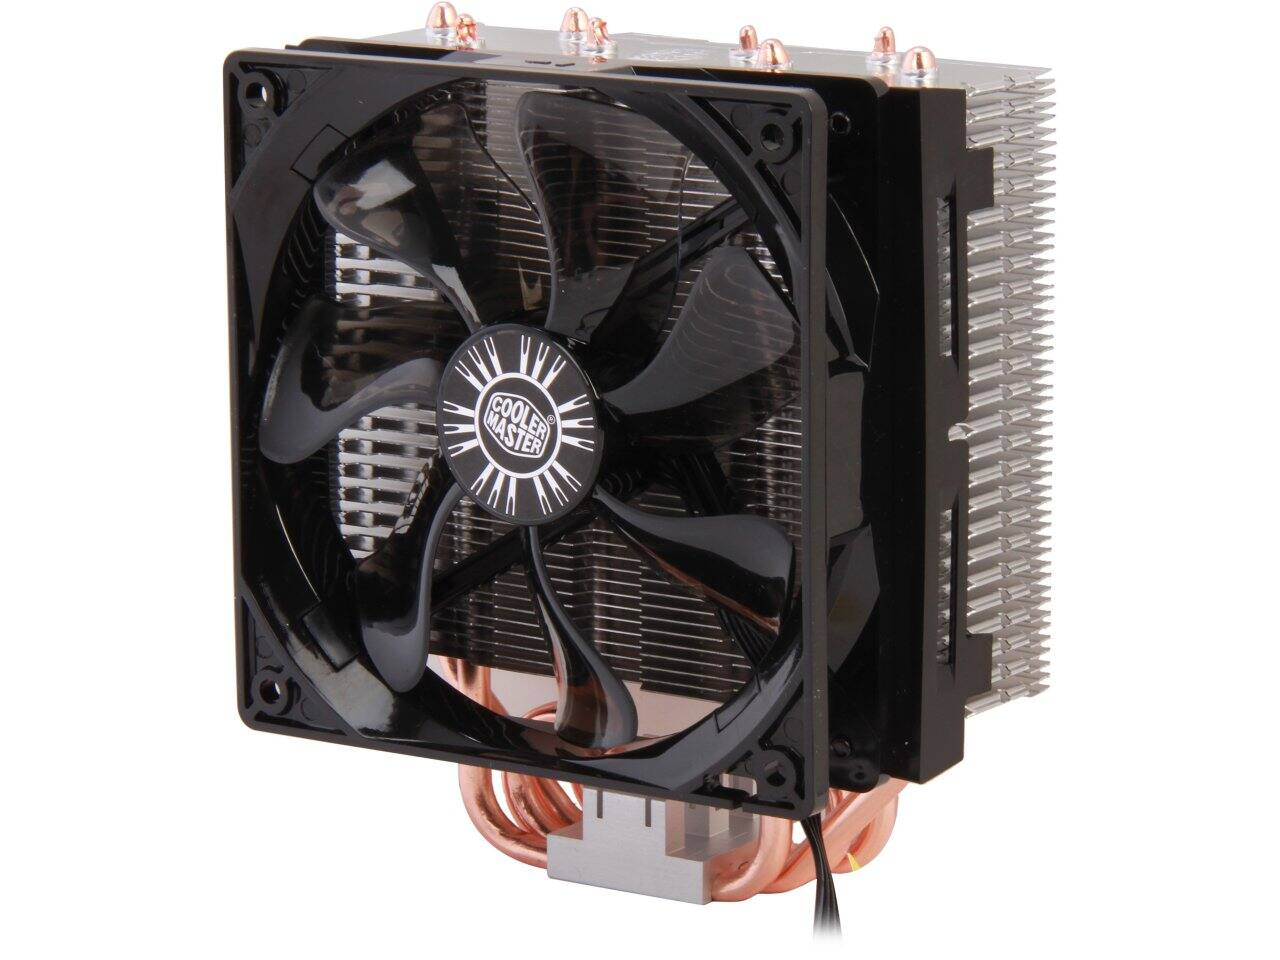 Cooler Master Hyper T4 CPU Cooler with 4 Direct Contact Heatpipes for $9.99 AR + Free Shipping @ Newegg.com